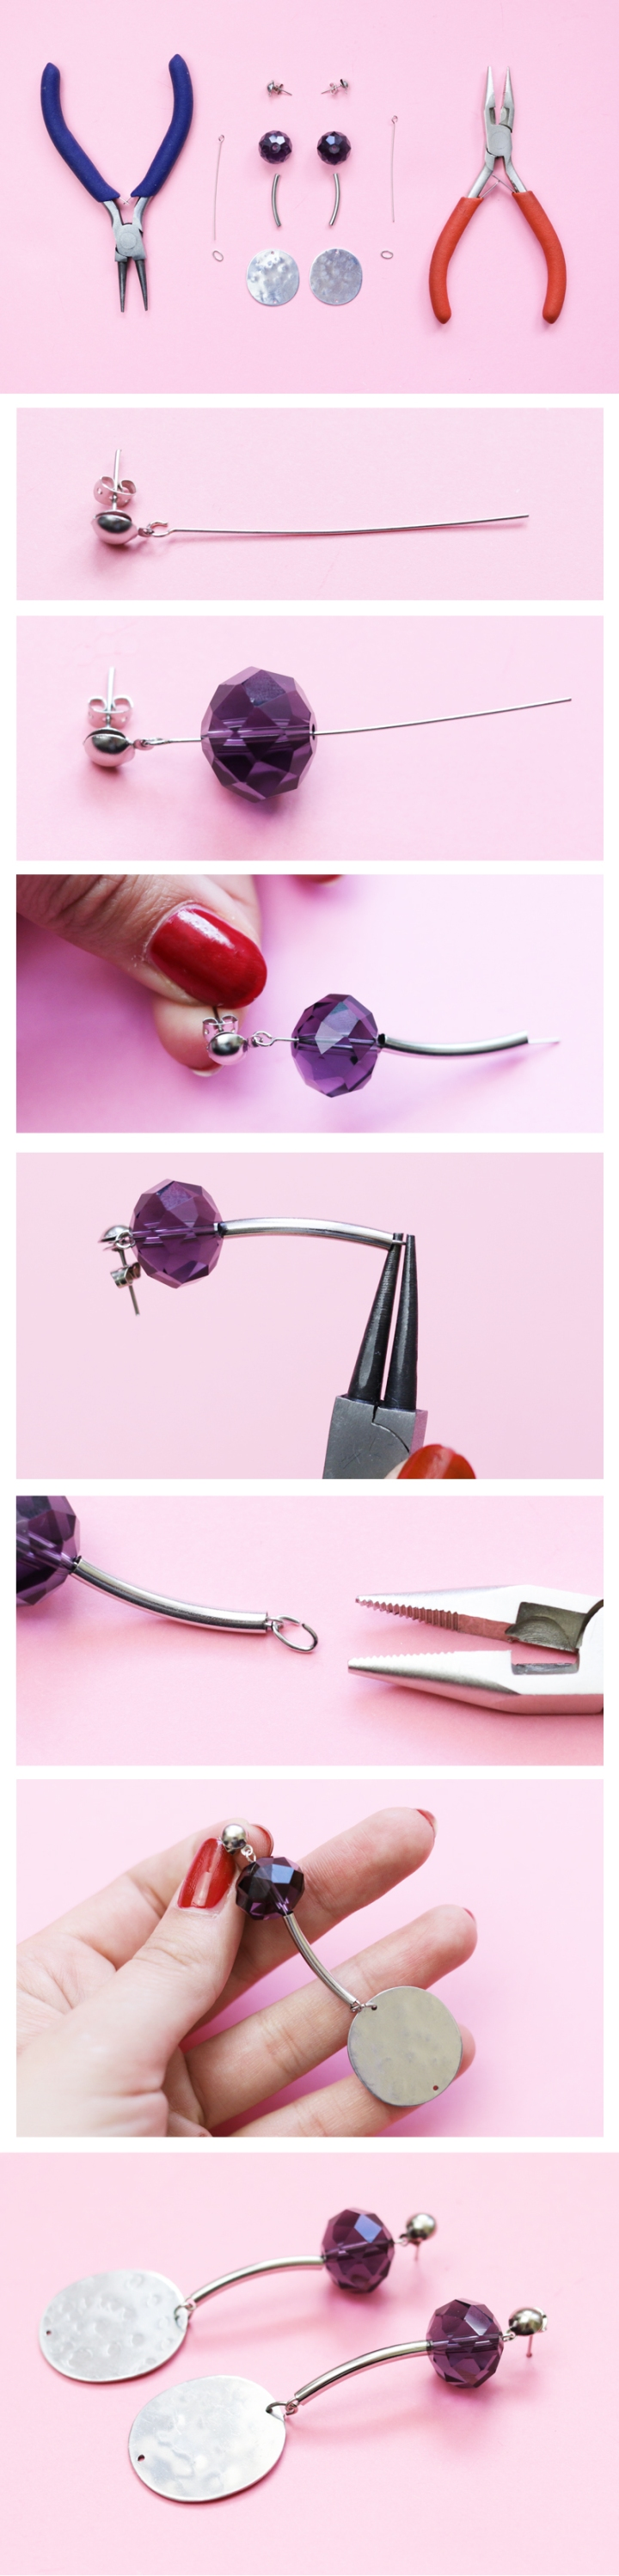 bp-design-perle-violette